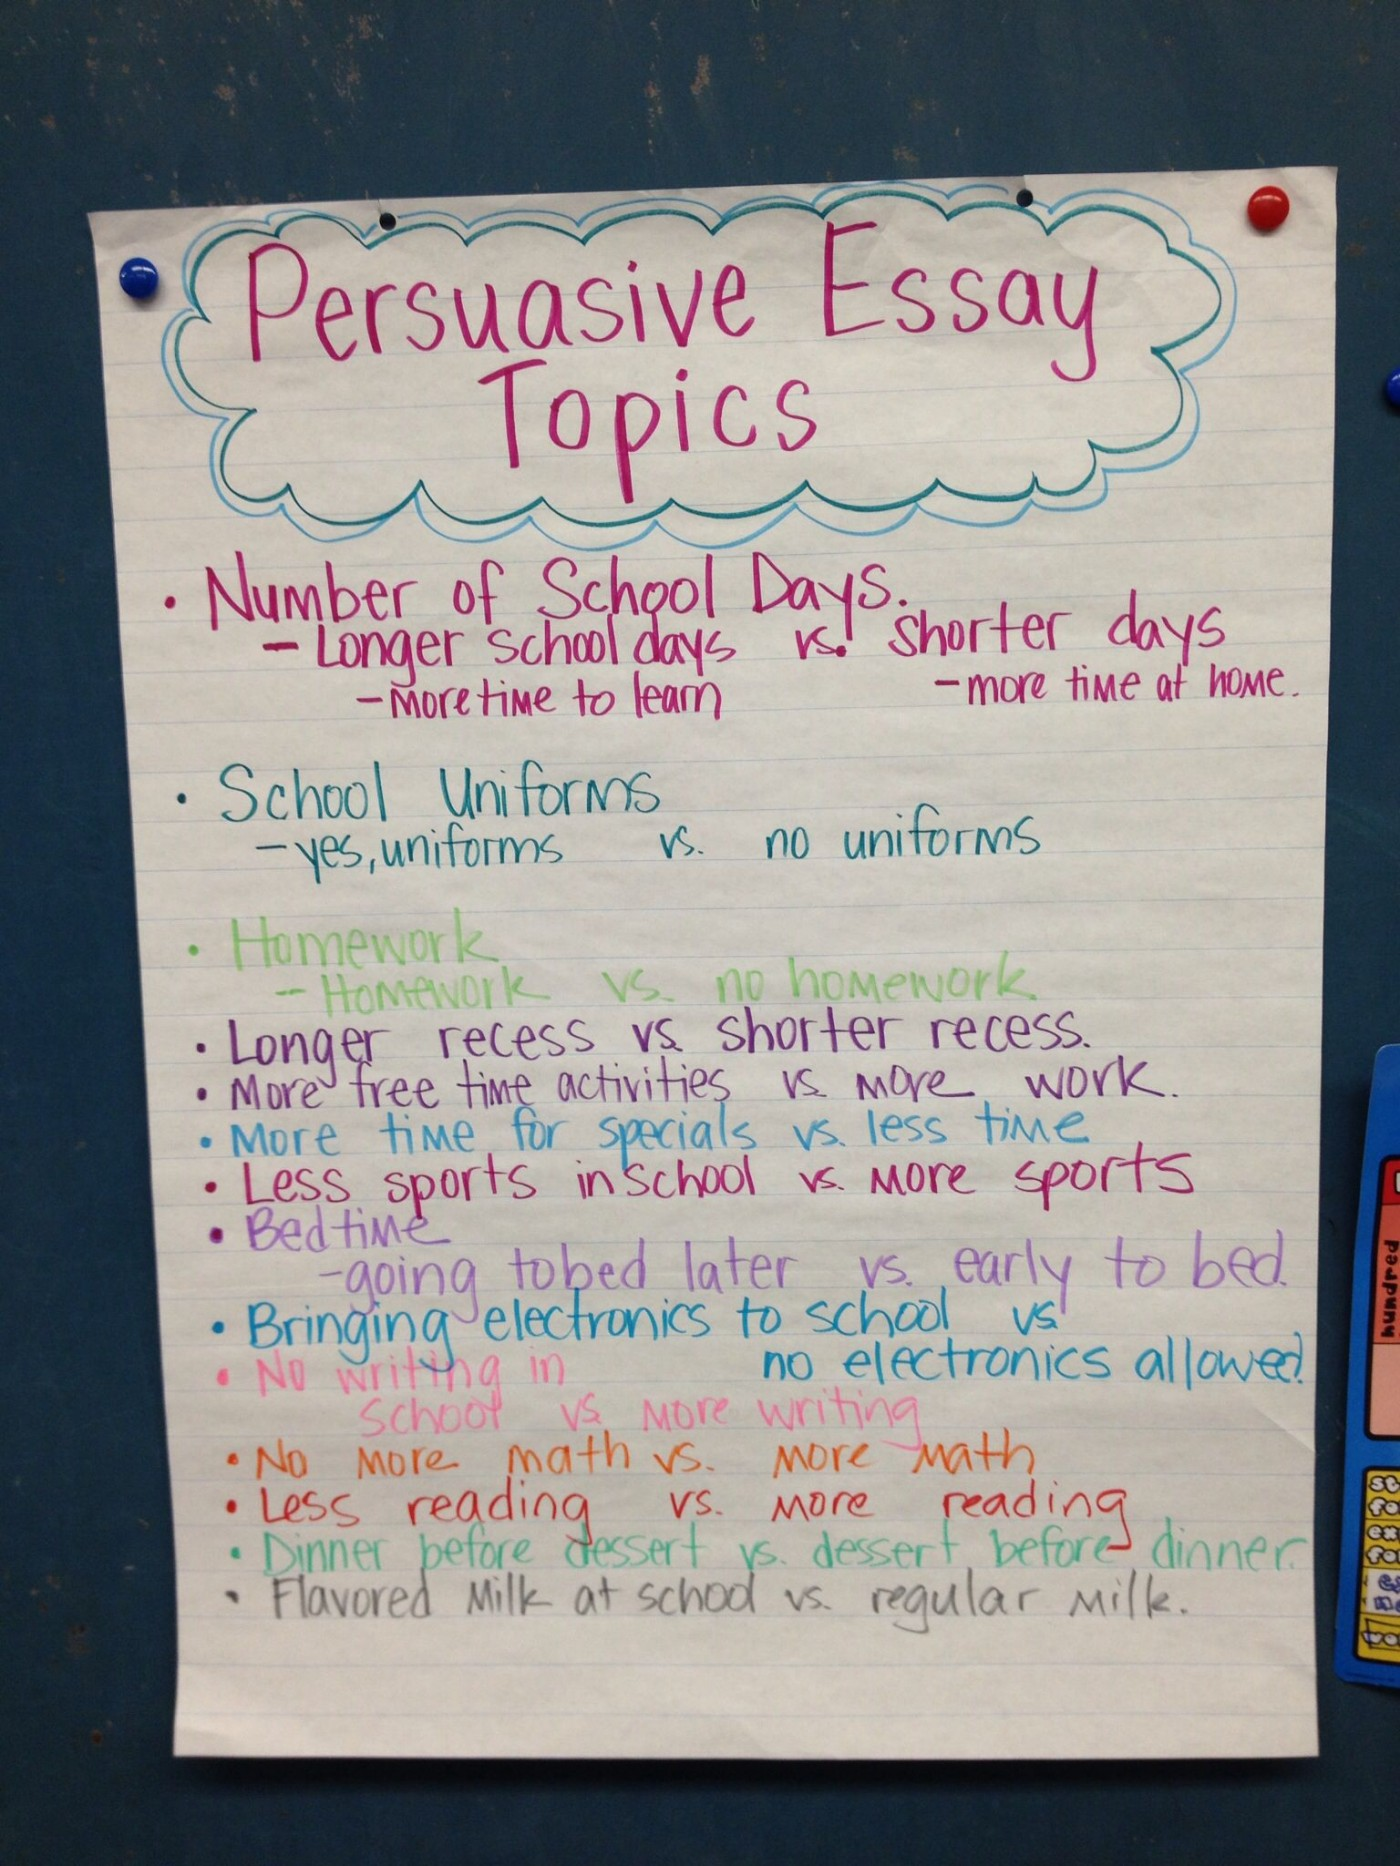 007 Persuasive Research Paper Topics For Middle Breathtaking School Essay Writing Prompts Students Schoolers 1400